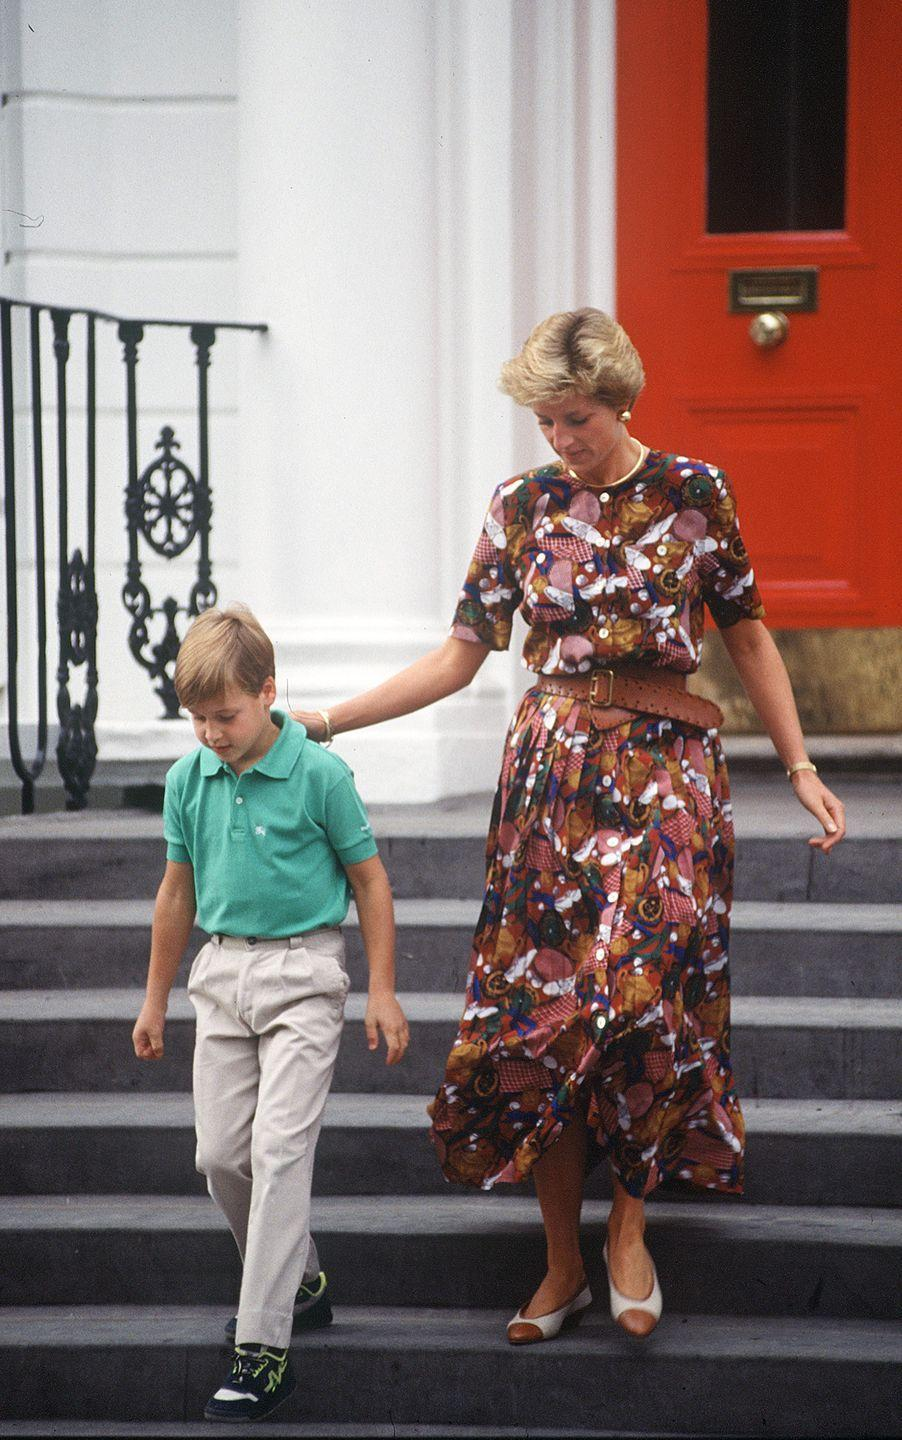 <p>The Princess of Wales put on a whimsical outfit while taking Prince William to school. Her unique dress includes sneakers, baseballs, trophies, and hints of a red and white gingham print. </p>